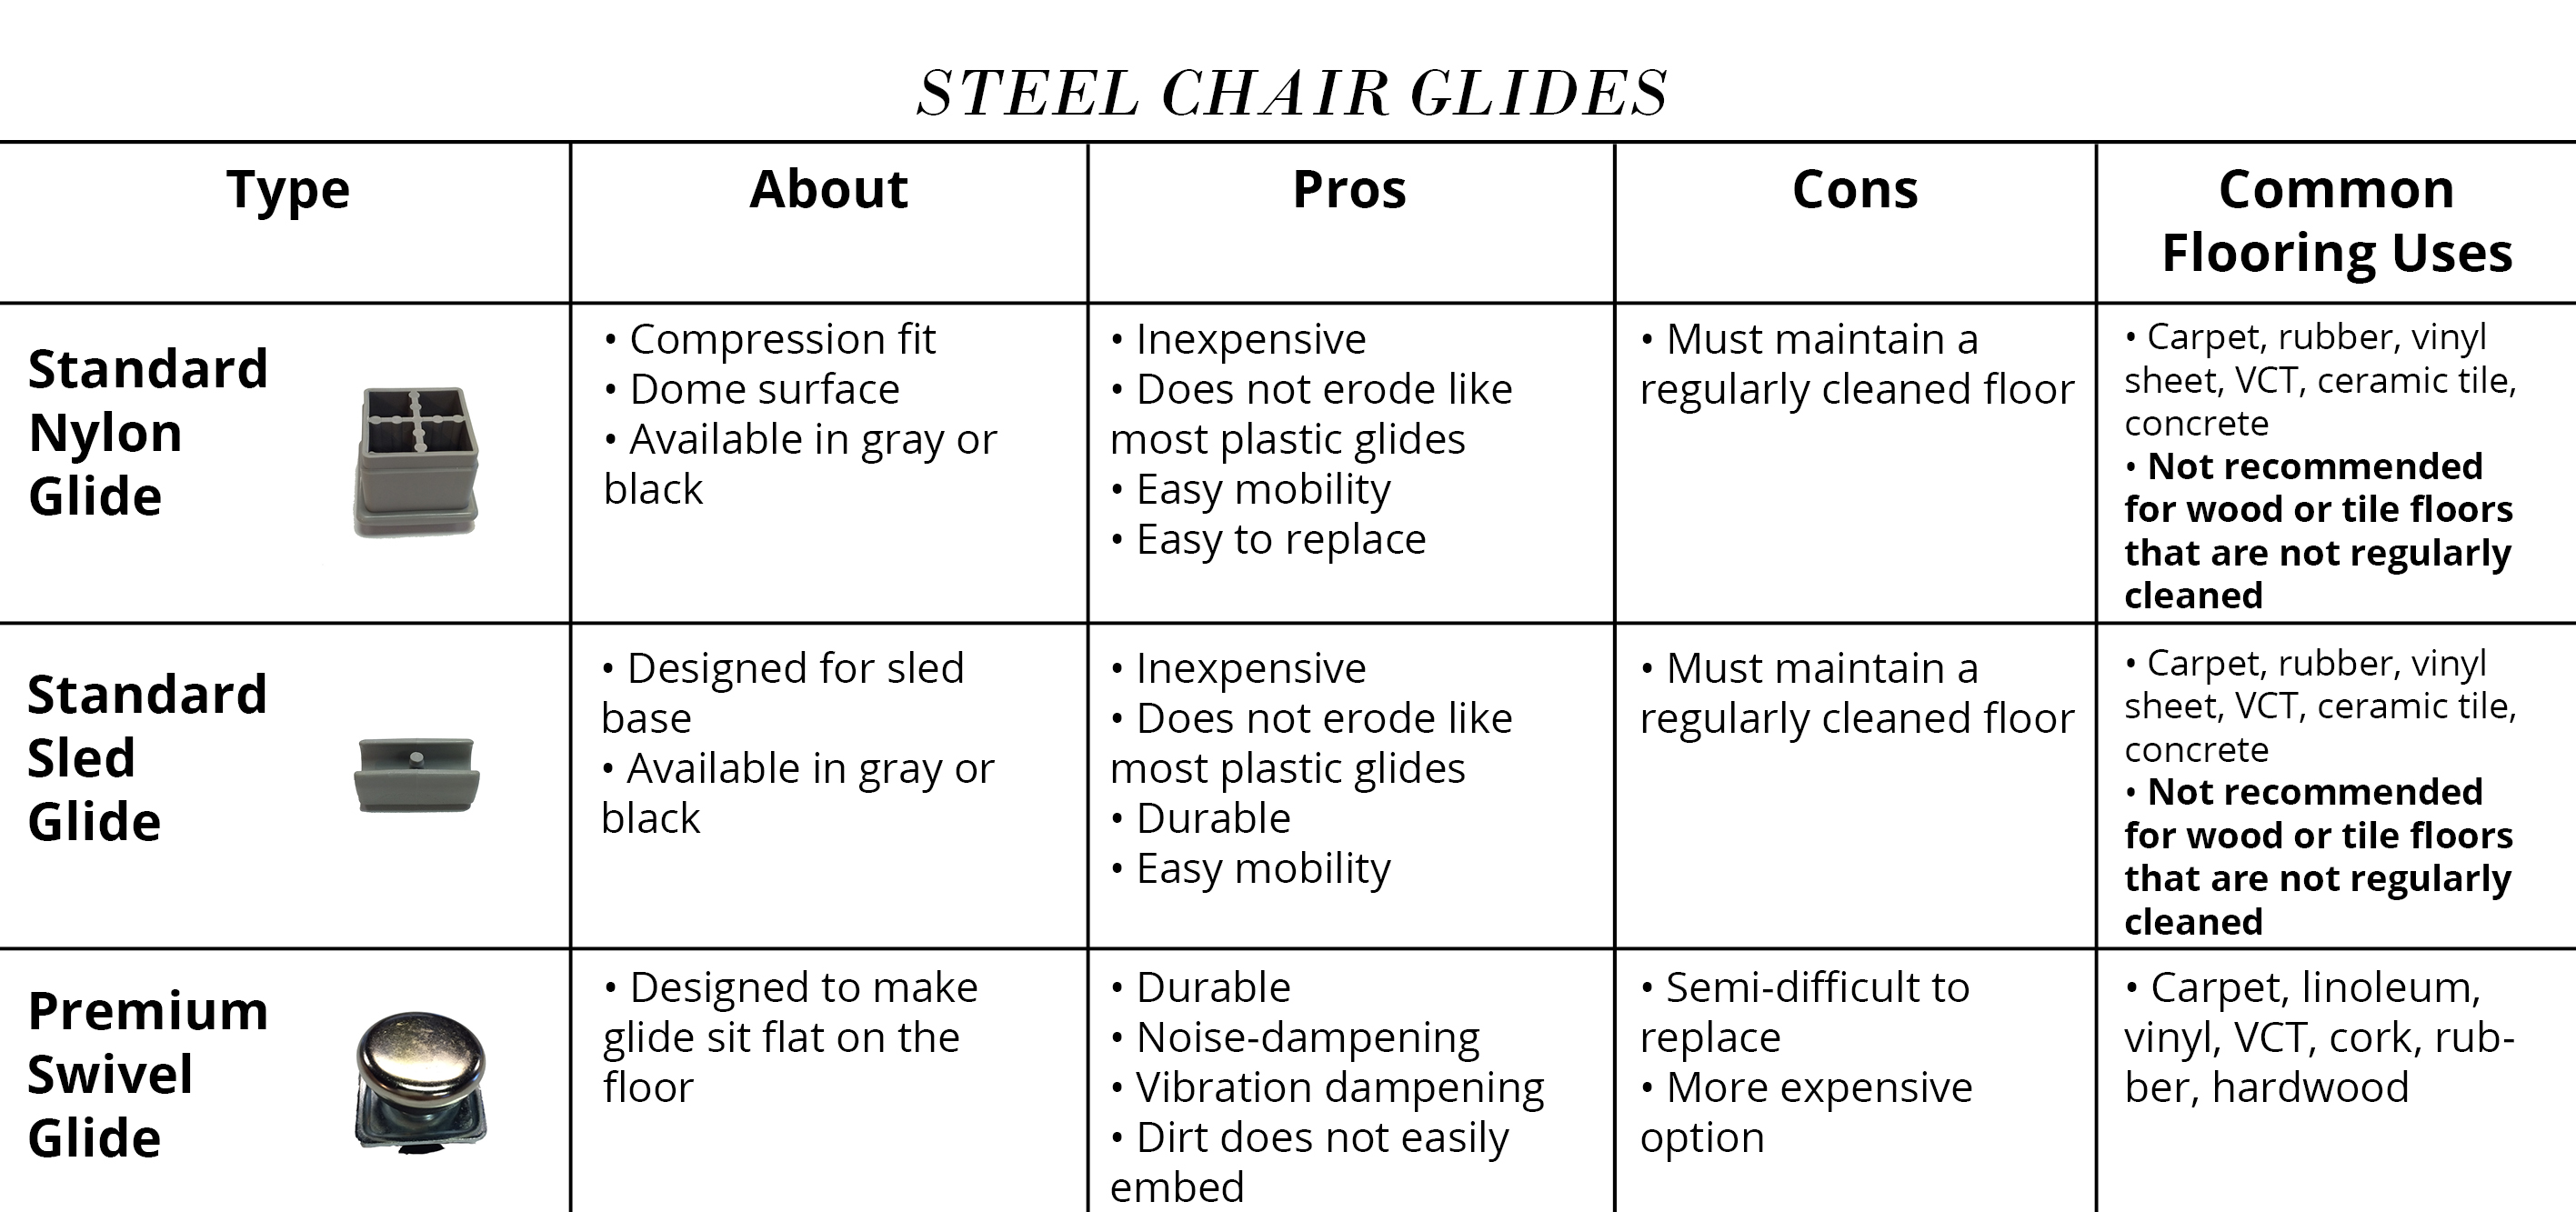 Steel Chair Glides Copy